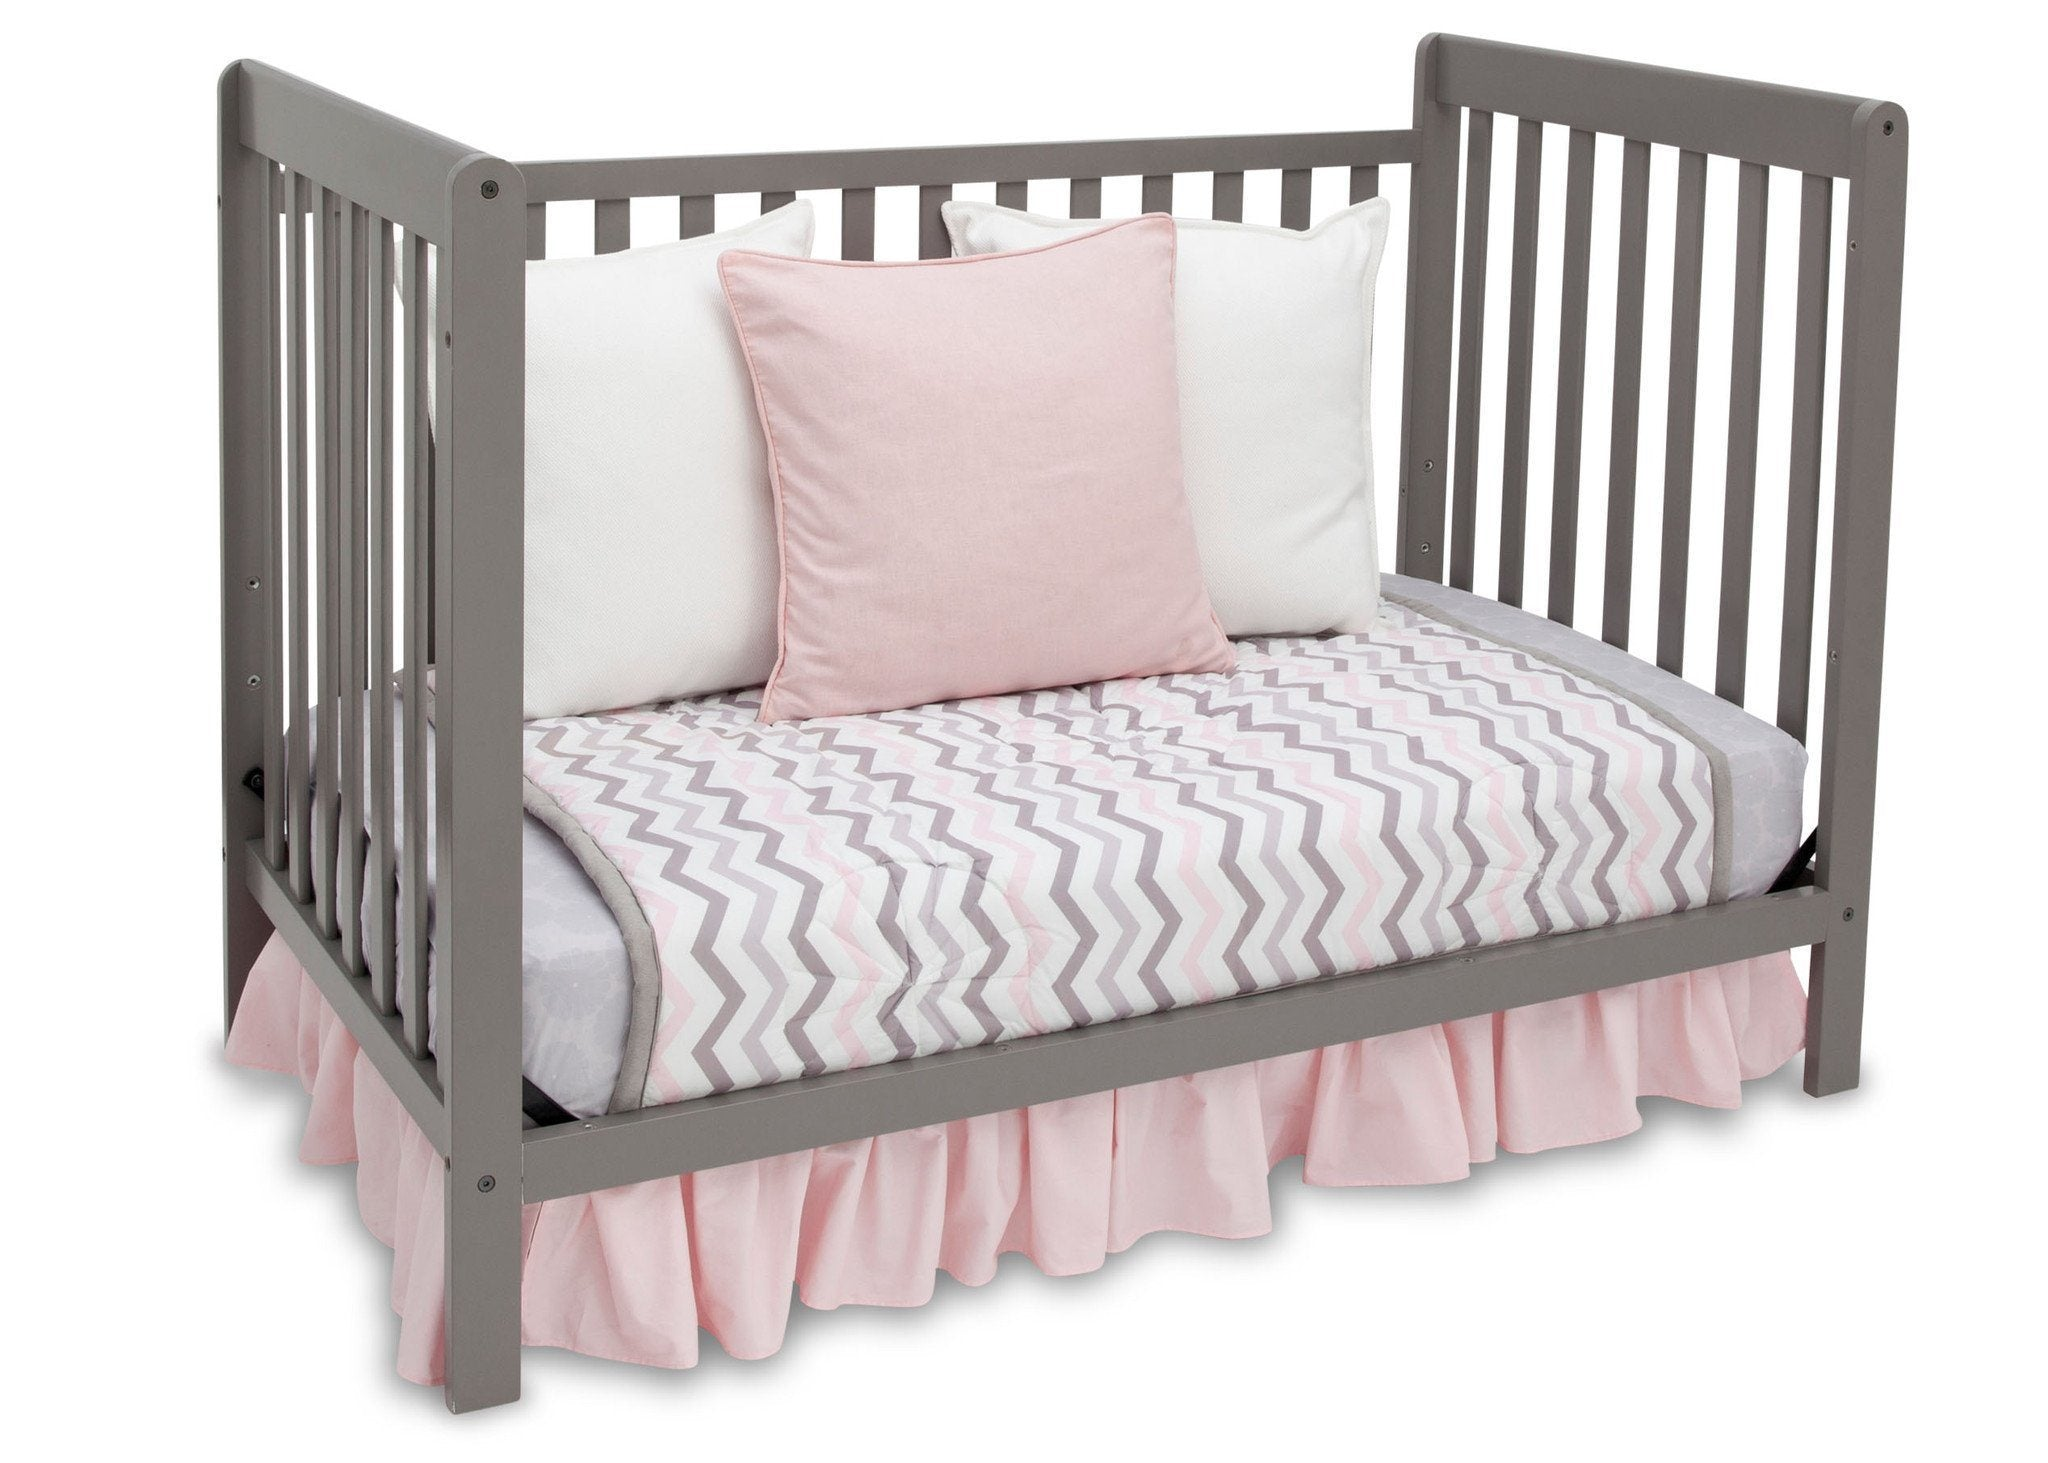 Delta Children Classic Grey (028) Waves 3-in-1-Crib, Day Bed Conversion b4b